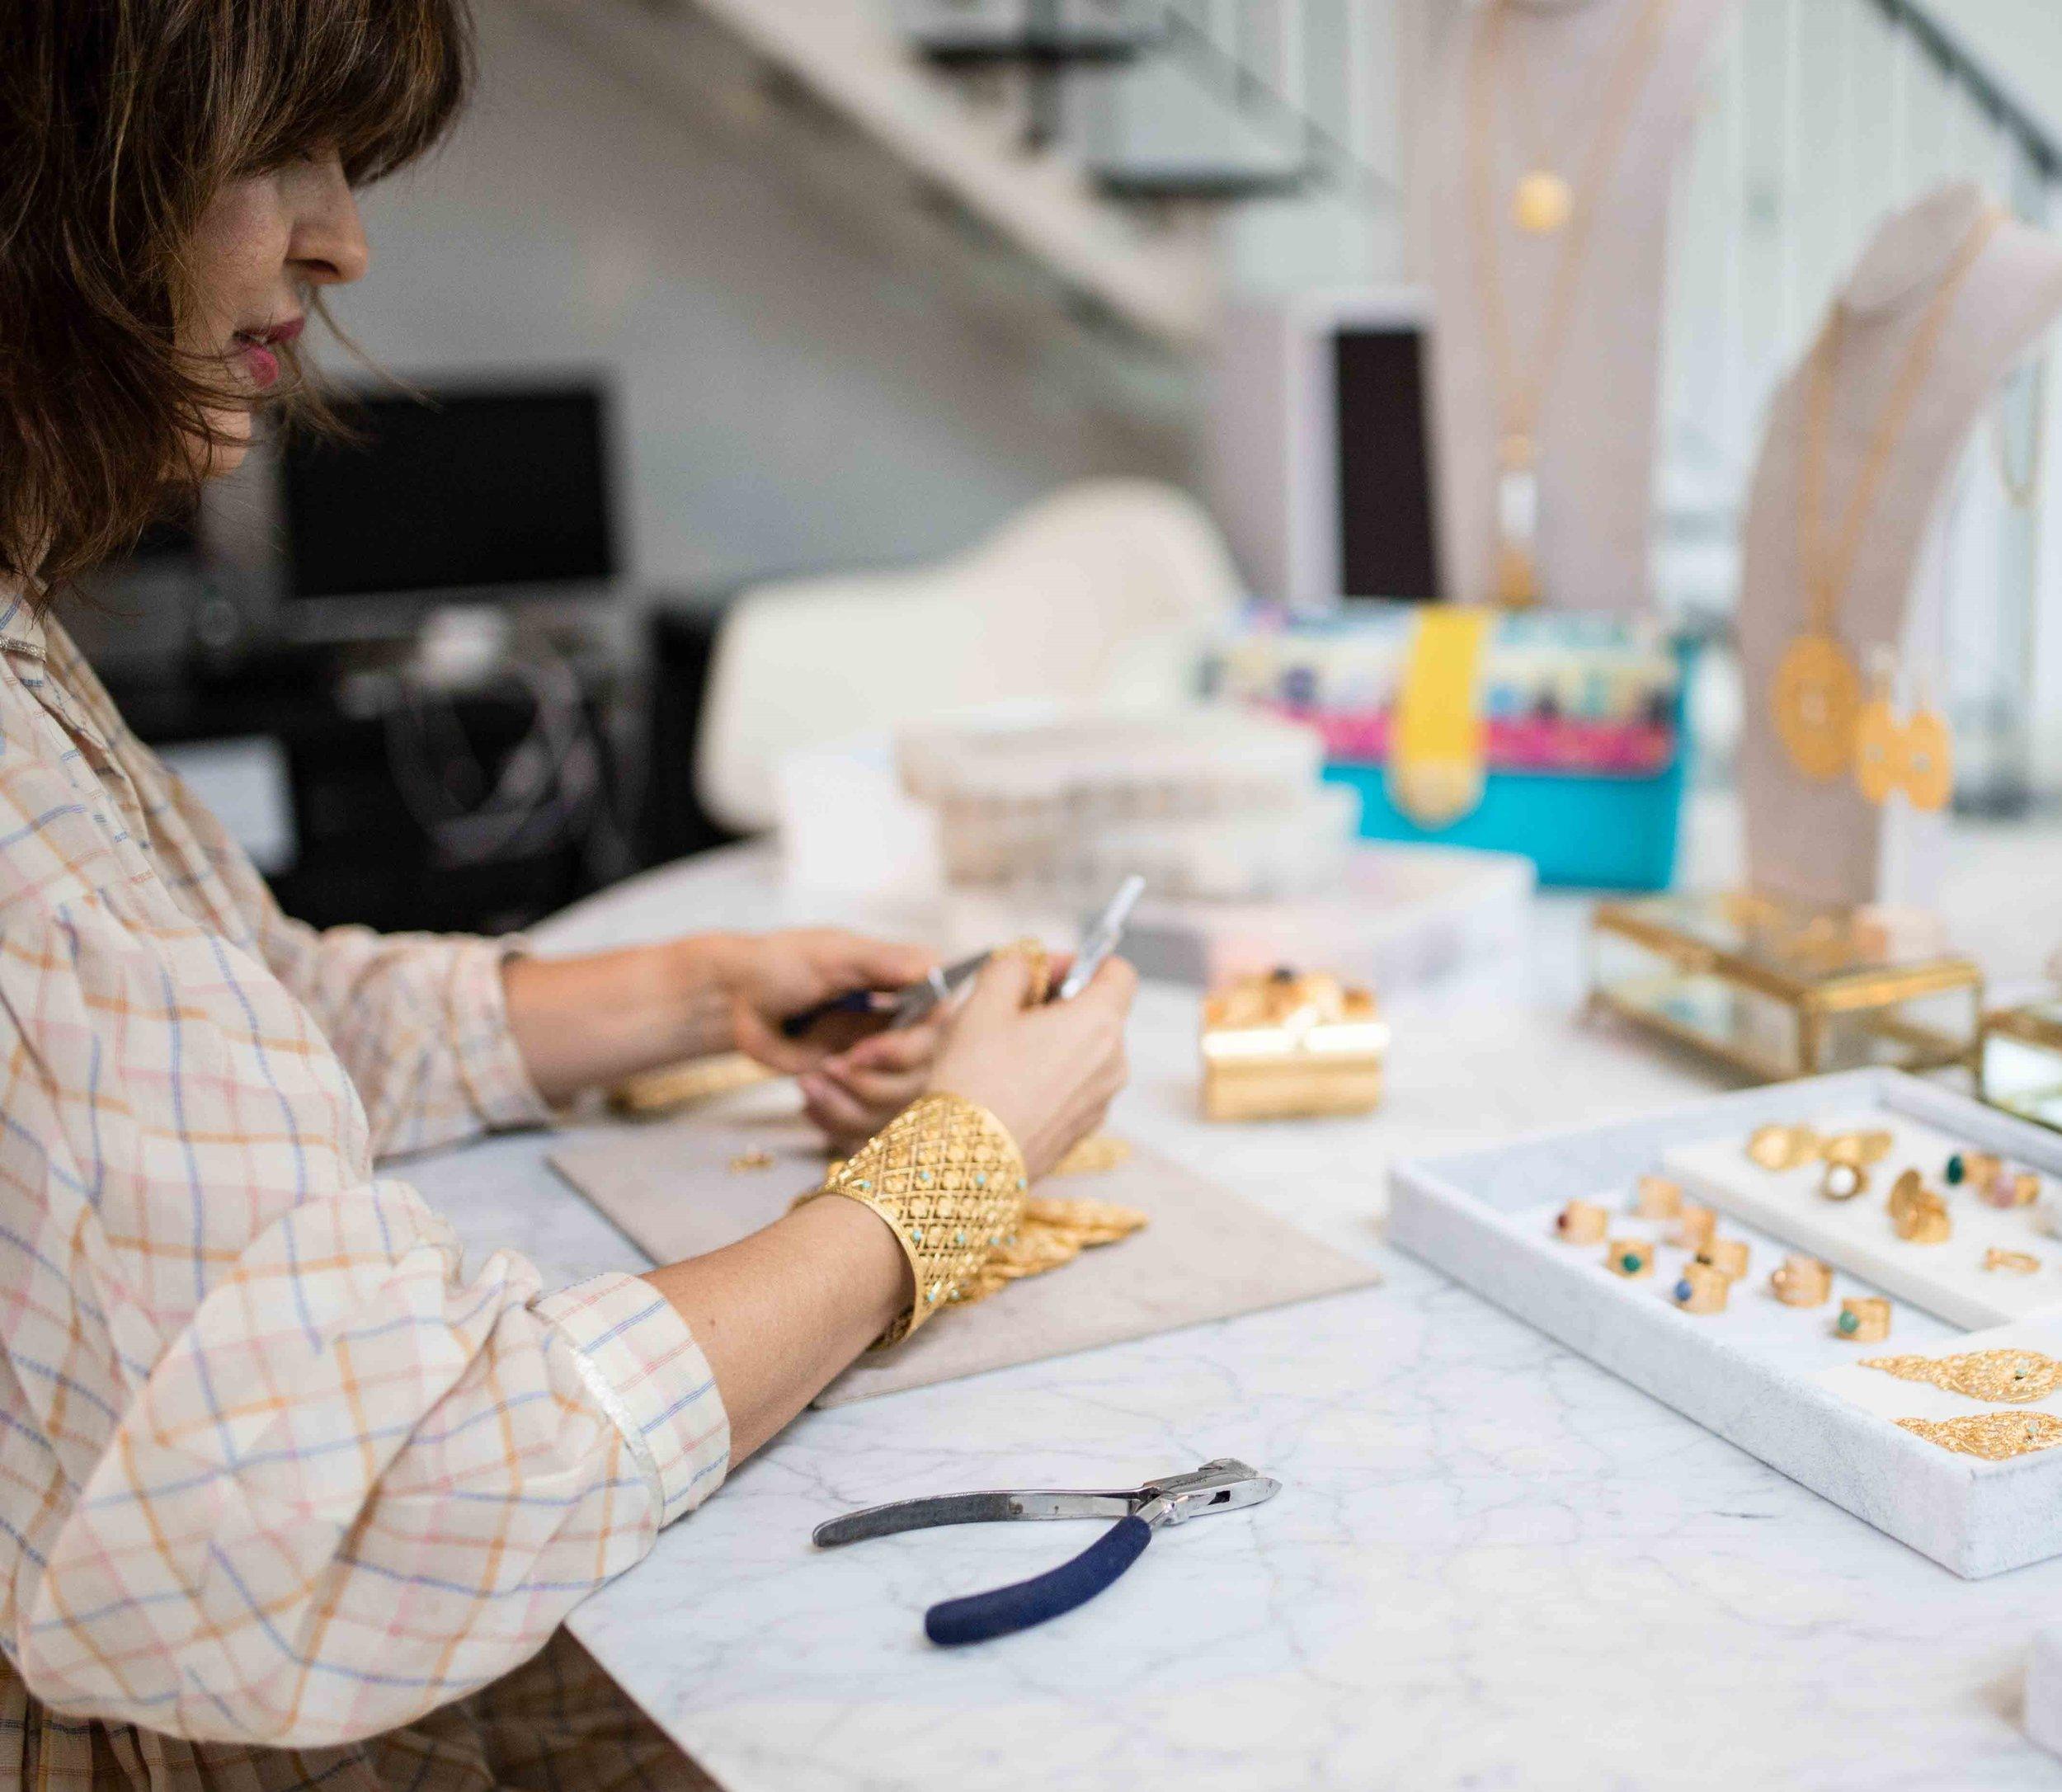 """As a Small Business Owner… - """"My business invades every moment of my life and I need to continuously learn every single day. It's really hard but I love my work.I'm driven by my passion for craftmanship and being able to see what I can create every day always gives me the biggest satisfaction."""